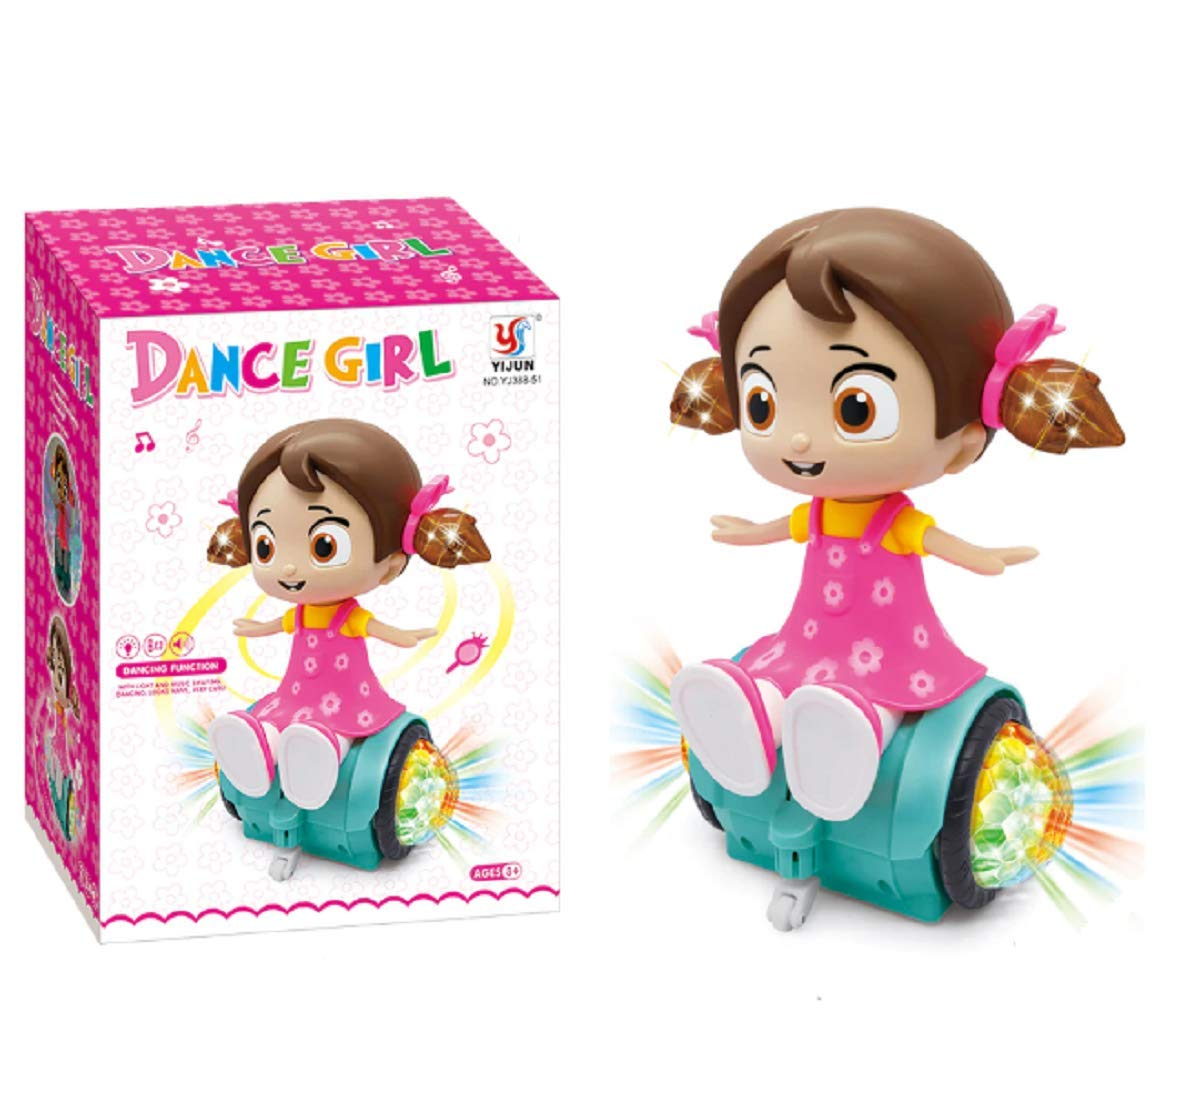 Dancing Girl Toy with 3D Lights and Music, Musical Dancing Girl Doll Toy for Kids